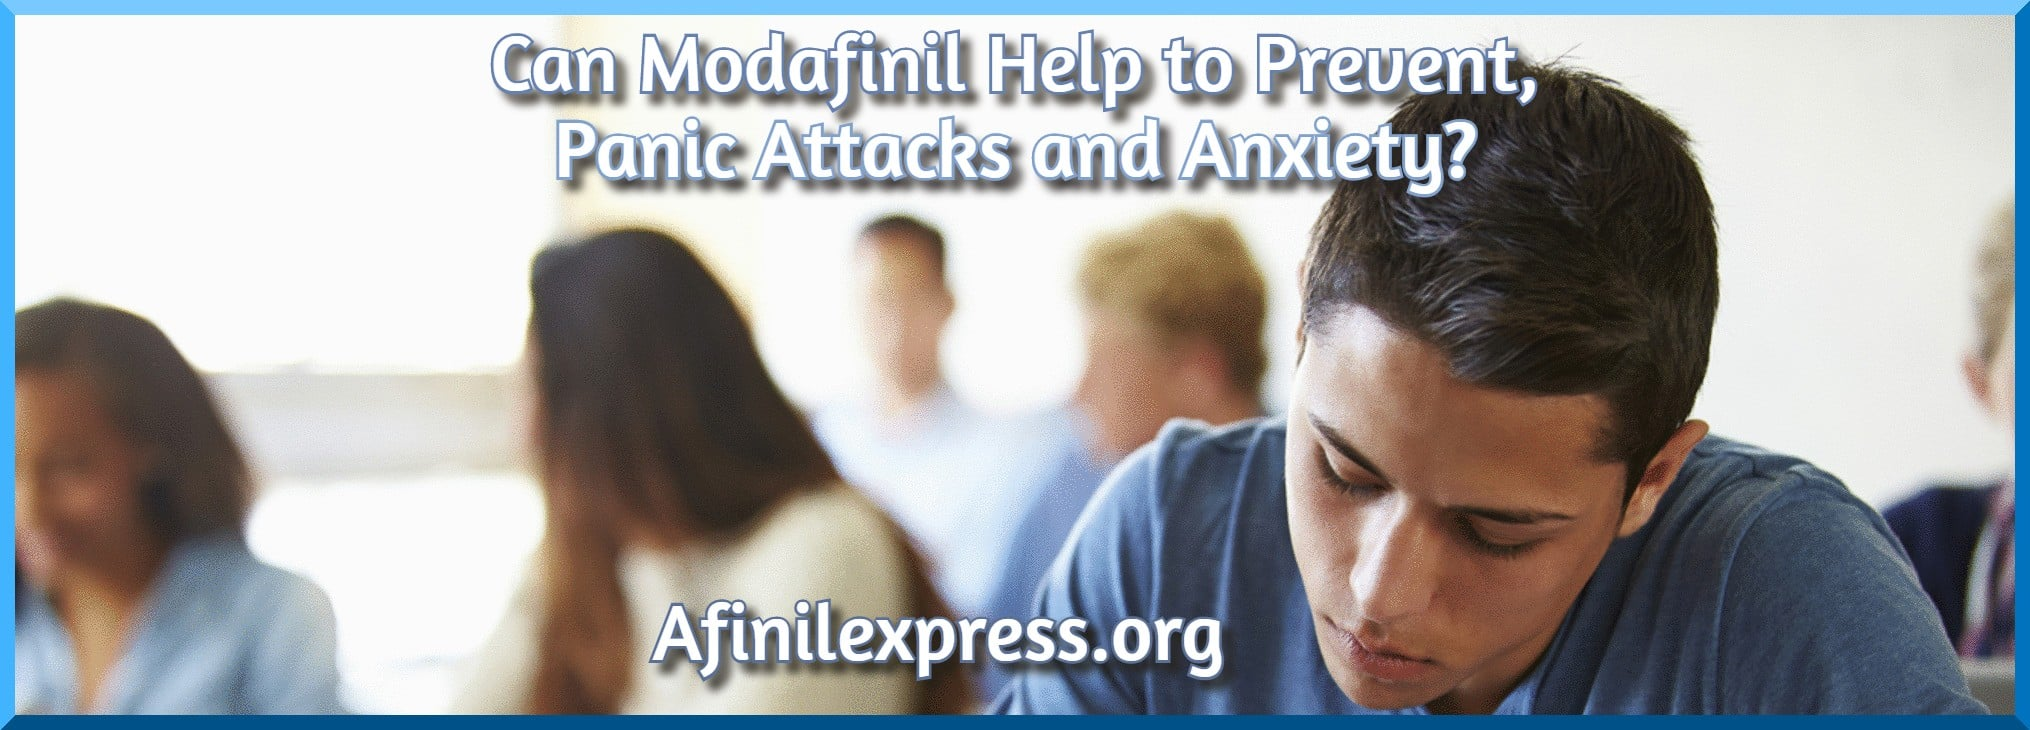 Can Modafinil Help to Prevent Panic Attacks and Anxiety, Afinilexpress.org